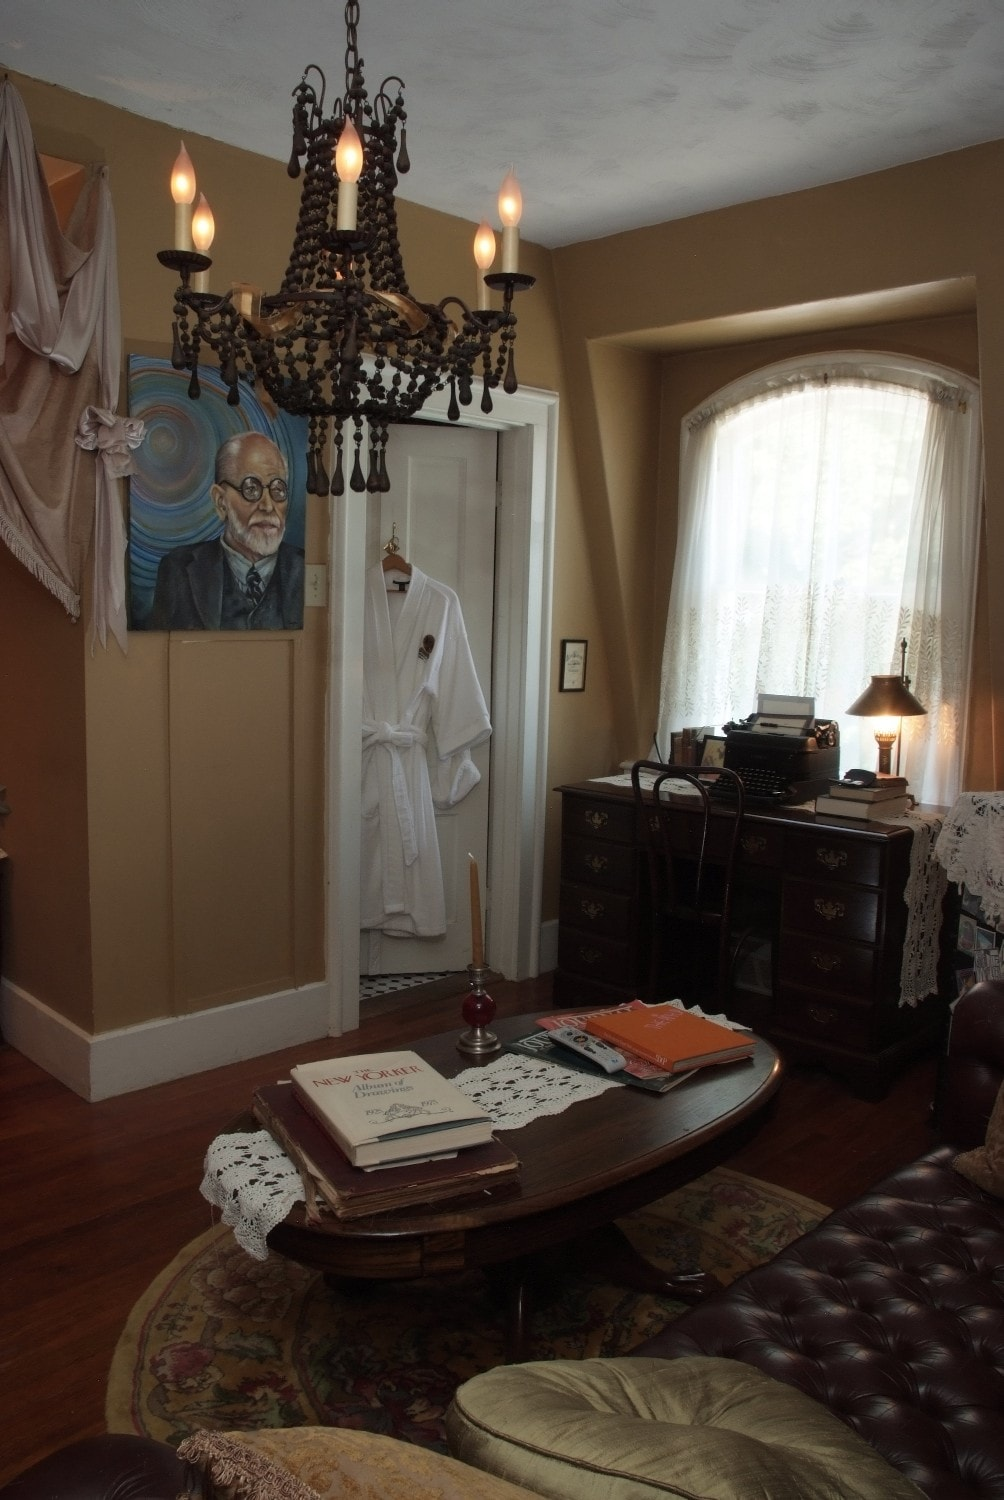 Freud Suite - 2nd room has a leather couch, TV and Twin bed - Private bath